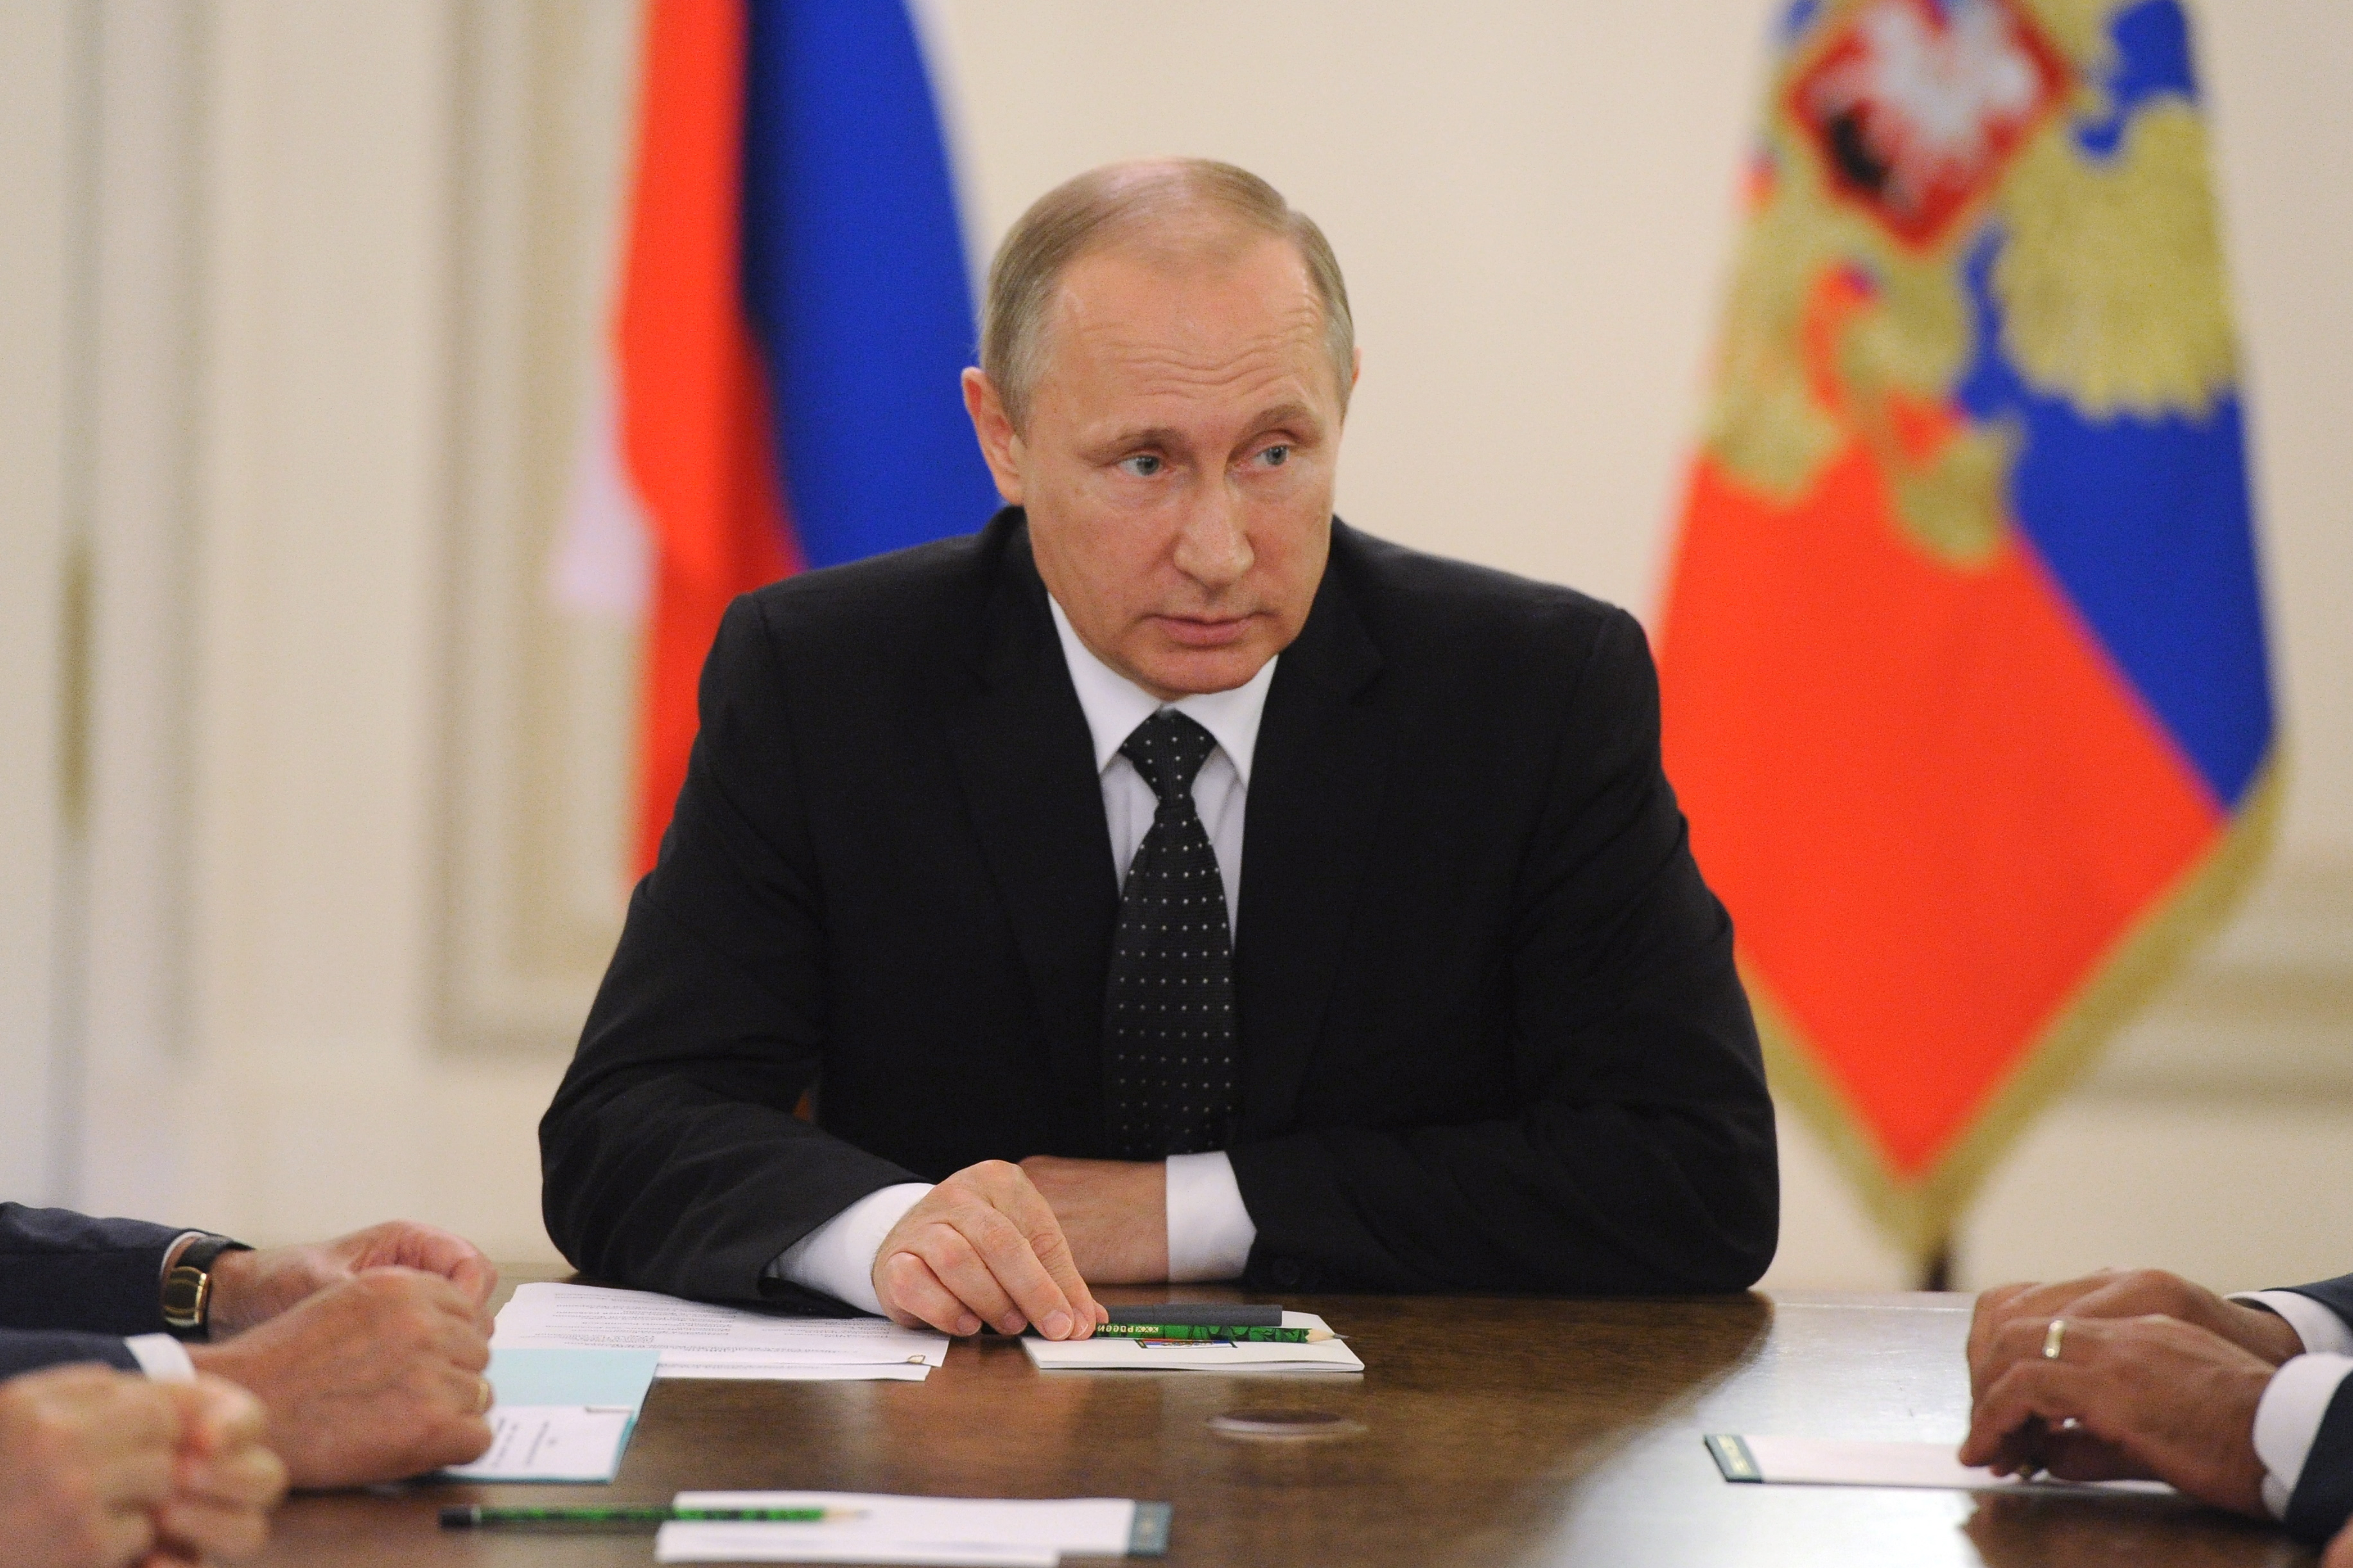 President Vladimir Putin chairs Russian Security Council meeting